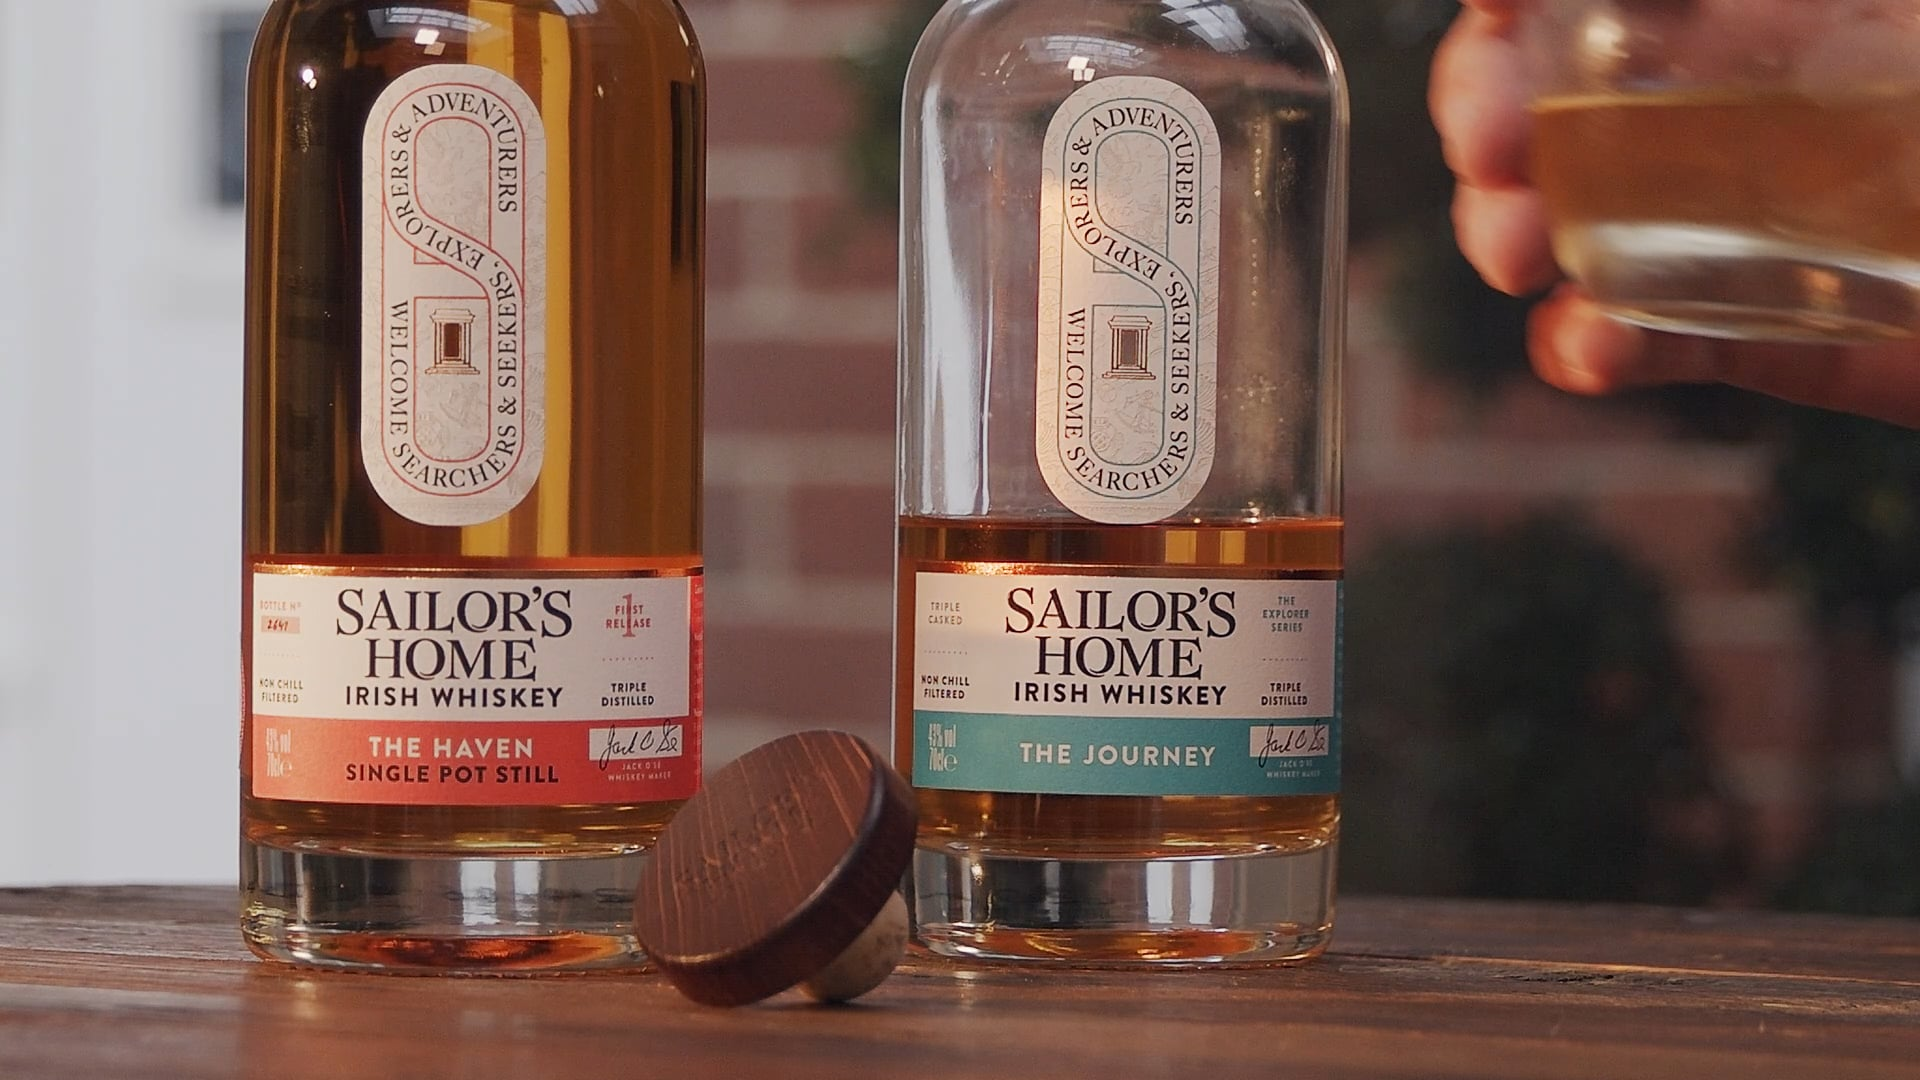 Sailor's Home Whiskey - The Journey